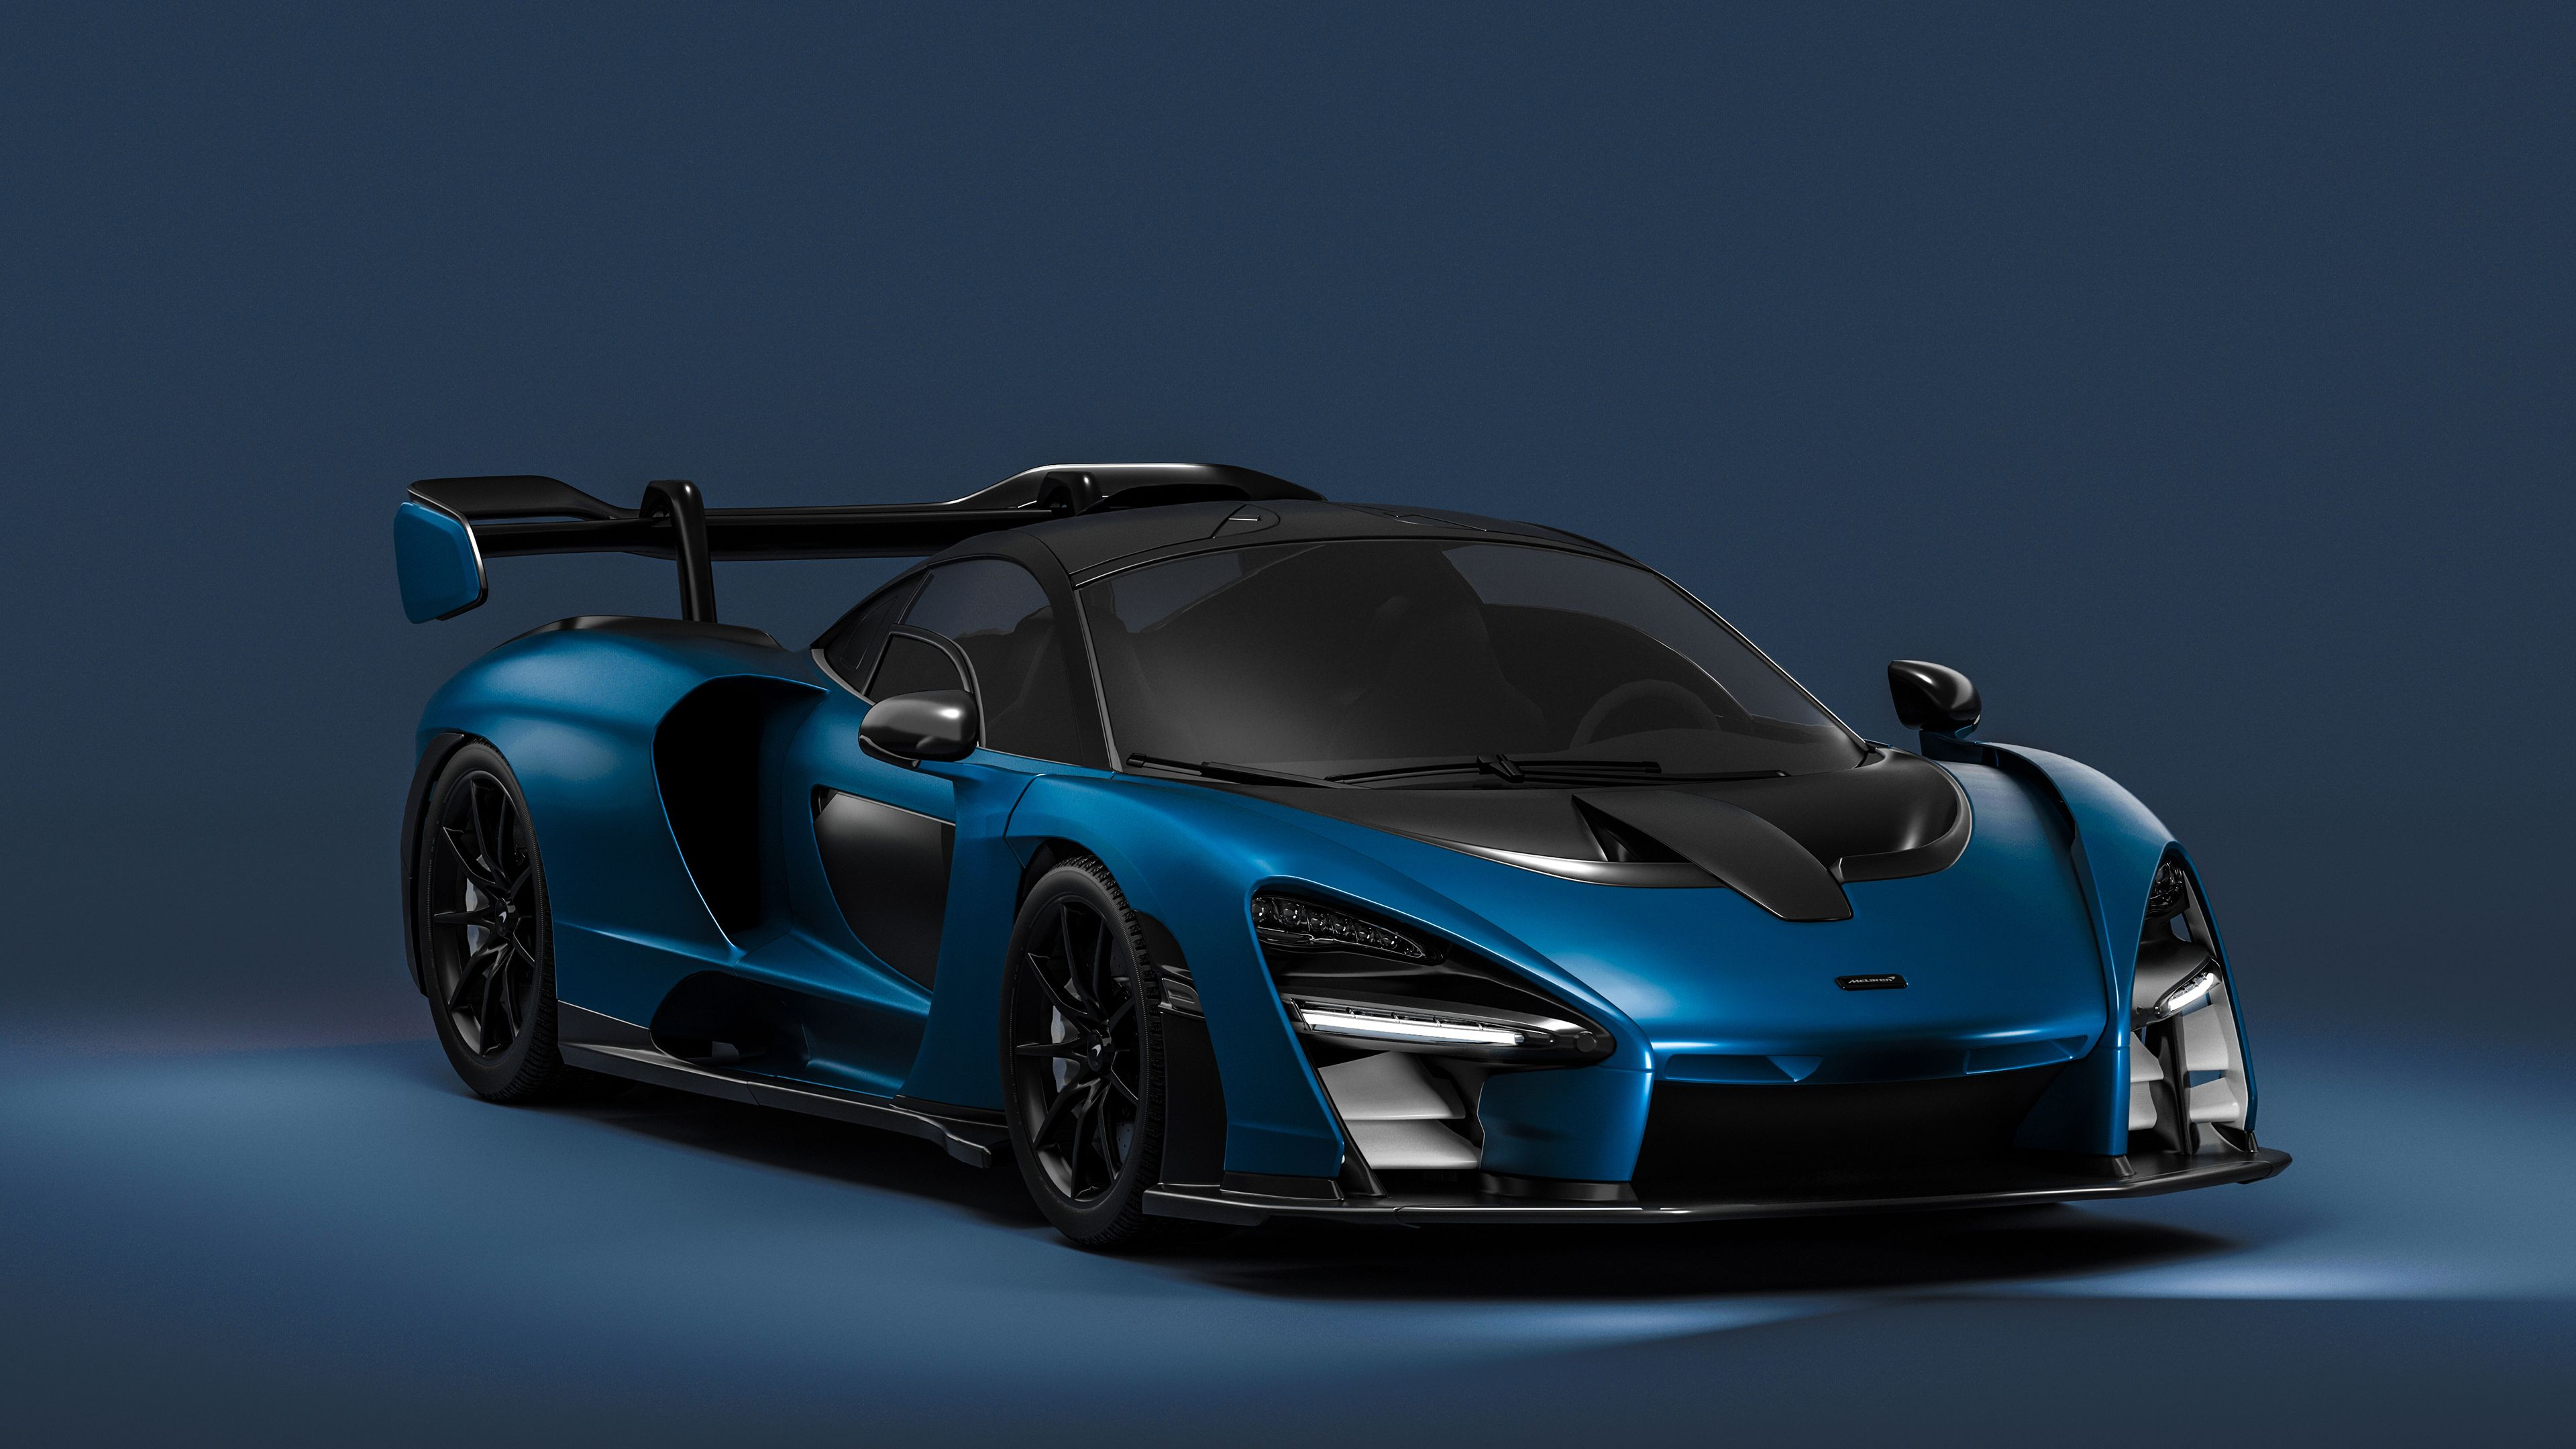 Mclaren Senna Cgi 4k Mclaren Wallpapers Mclaren Senna Wallpapers Hd Wallpapers Cgi Wallpapers Cars Wallpapers Car Wallpapers Sports Car Wallpaper Mclaren